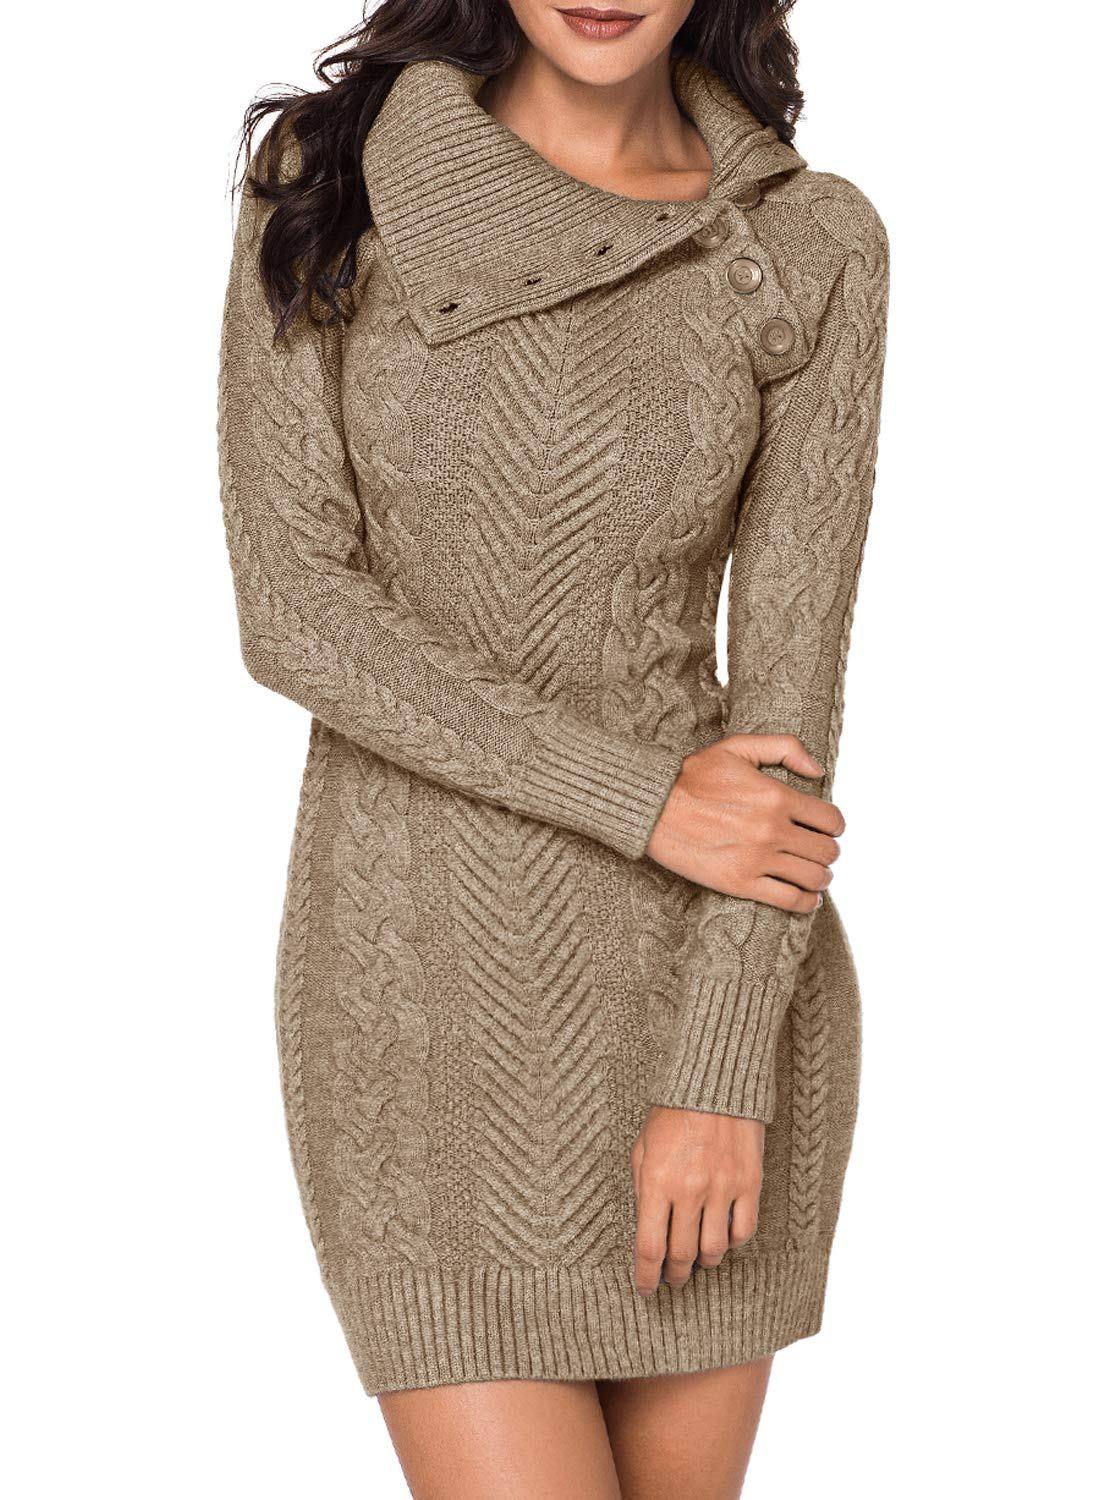 Sweater Dress - Women's Long Sleeve Crew Neck Slim Knit Sweater Bodycon Midi Dress